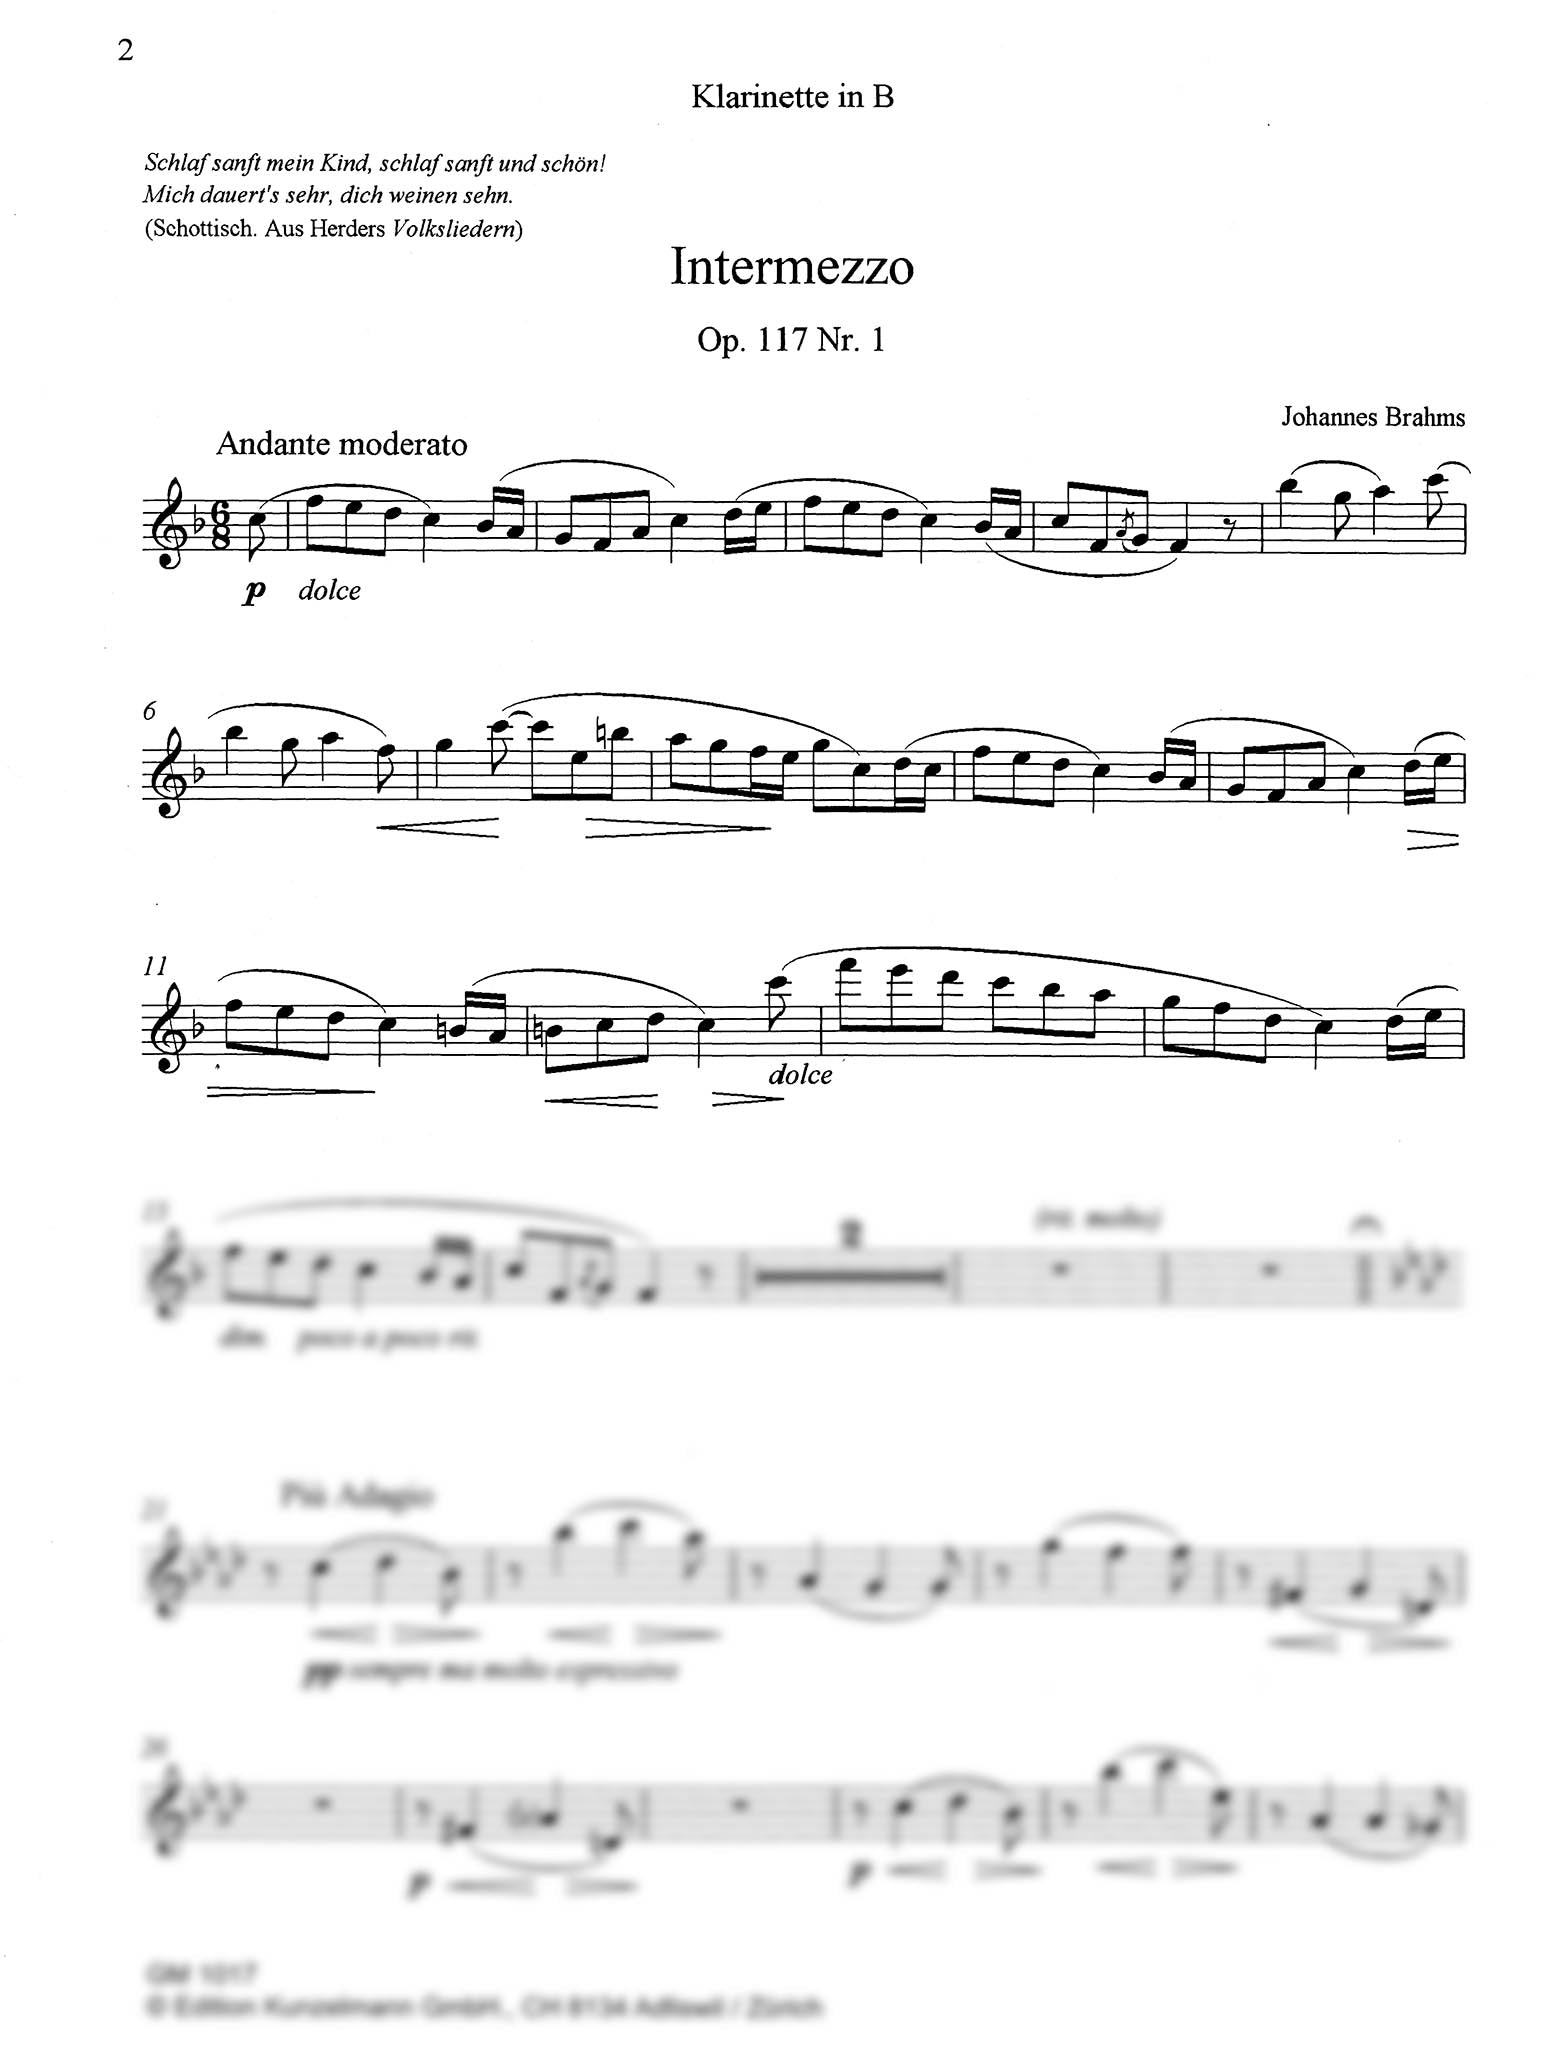 Intermezzo, Op. 117 No. 1 Clarinet part